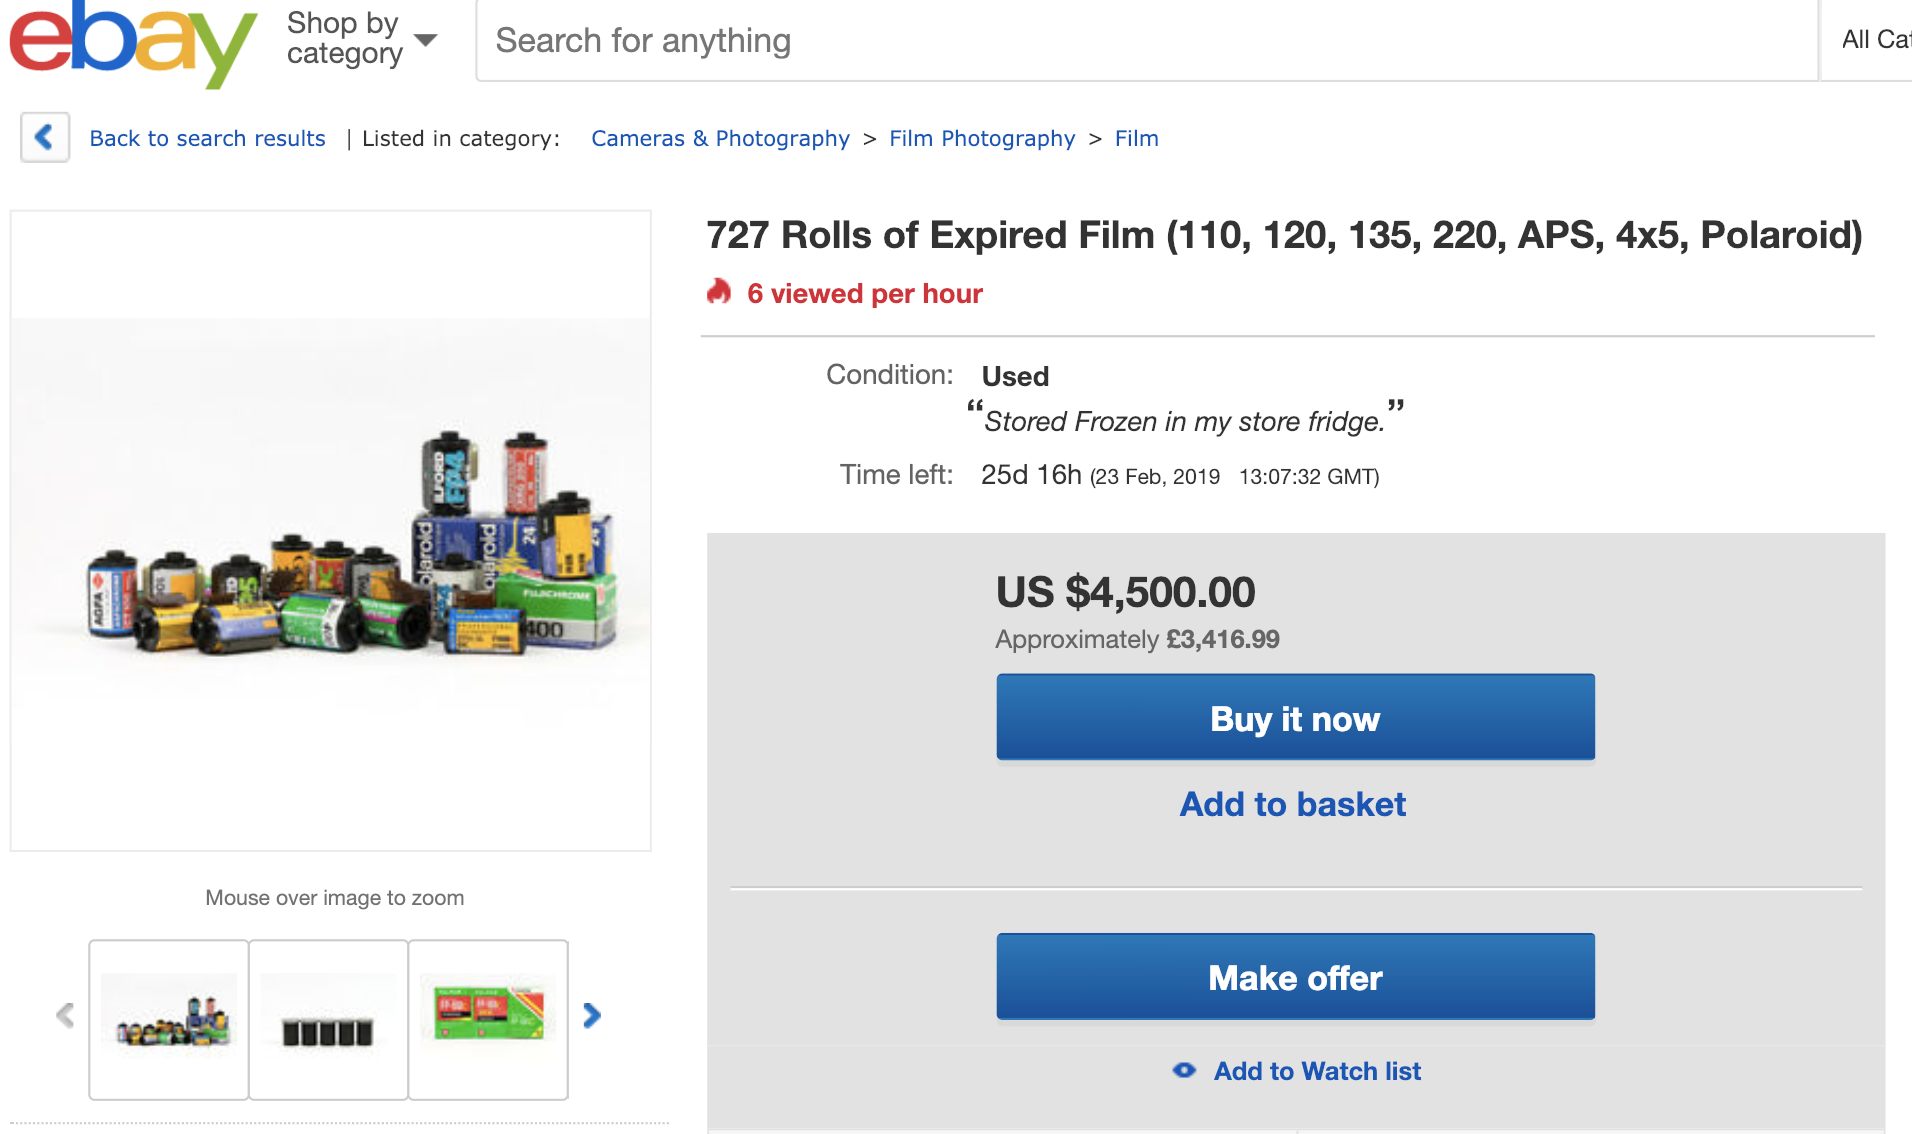 eBay blisting screenshot